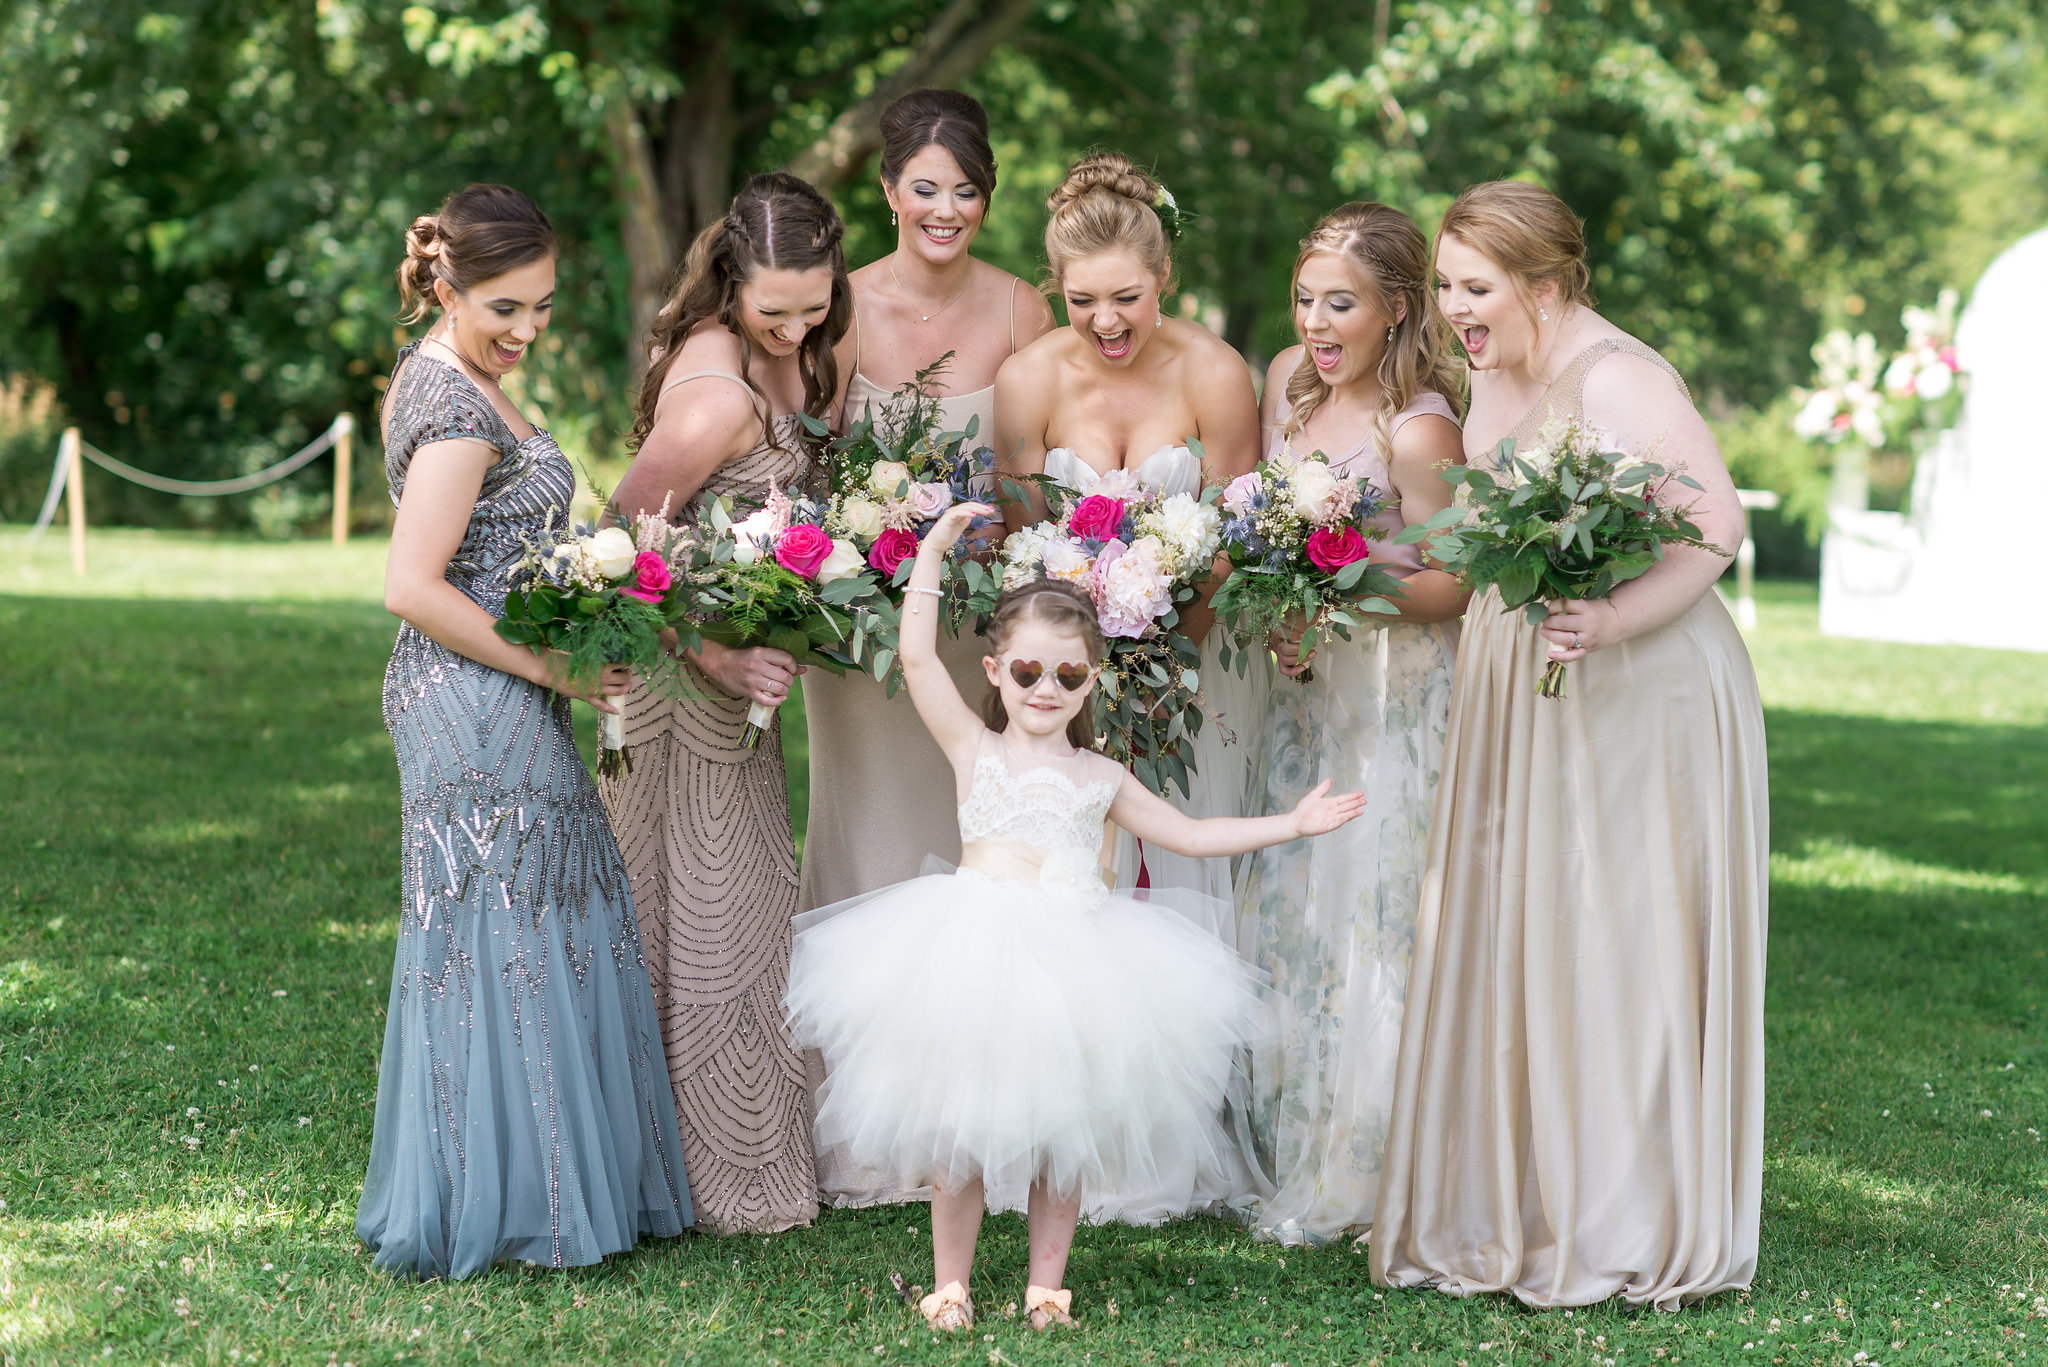 bridal party with flower girl and heart glasses | Kelly Birch Photography :: Bloom Lake Barn :: Sixpence Events Minnesota wedding planner :: A Vintage Touch Weddings :: Brett Dorian.jpg